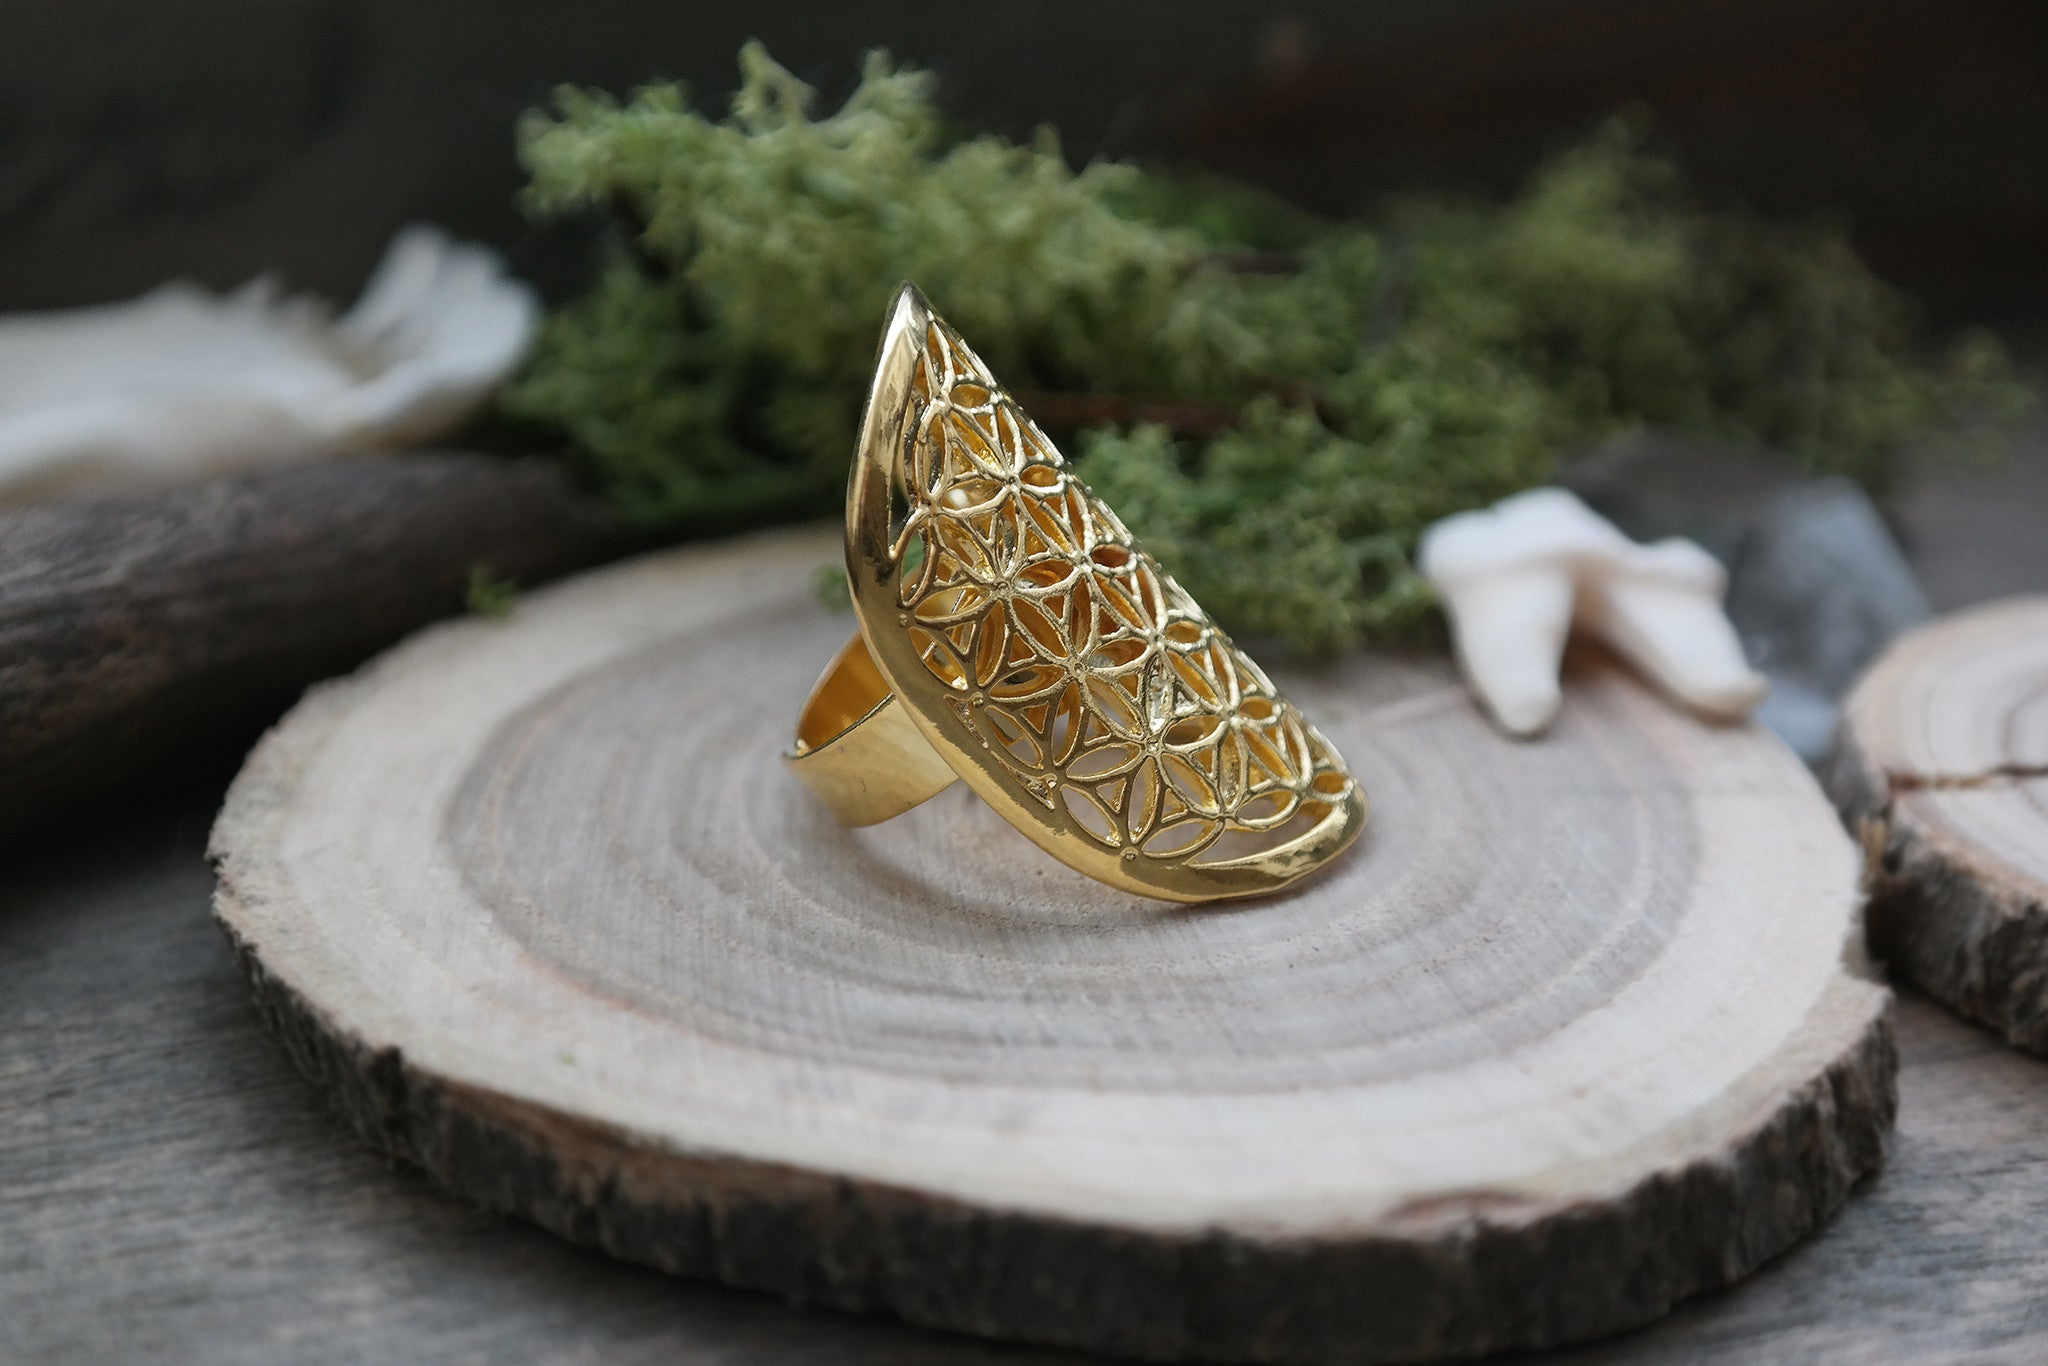 golden 'Flower of Life' Ring #700